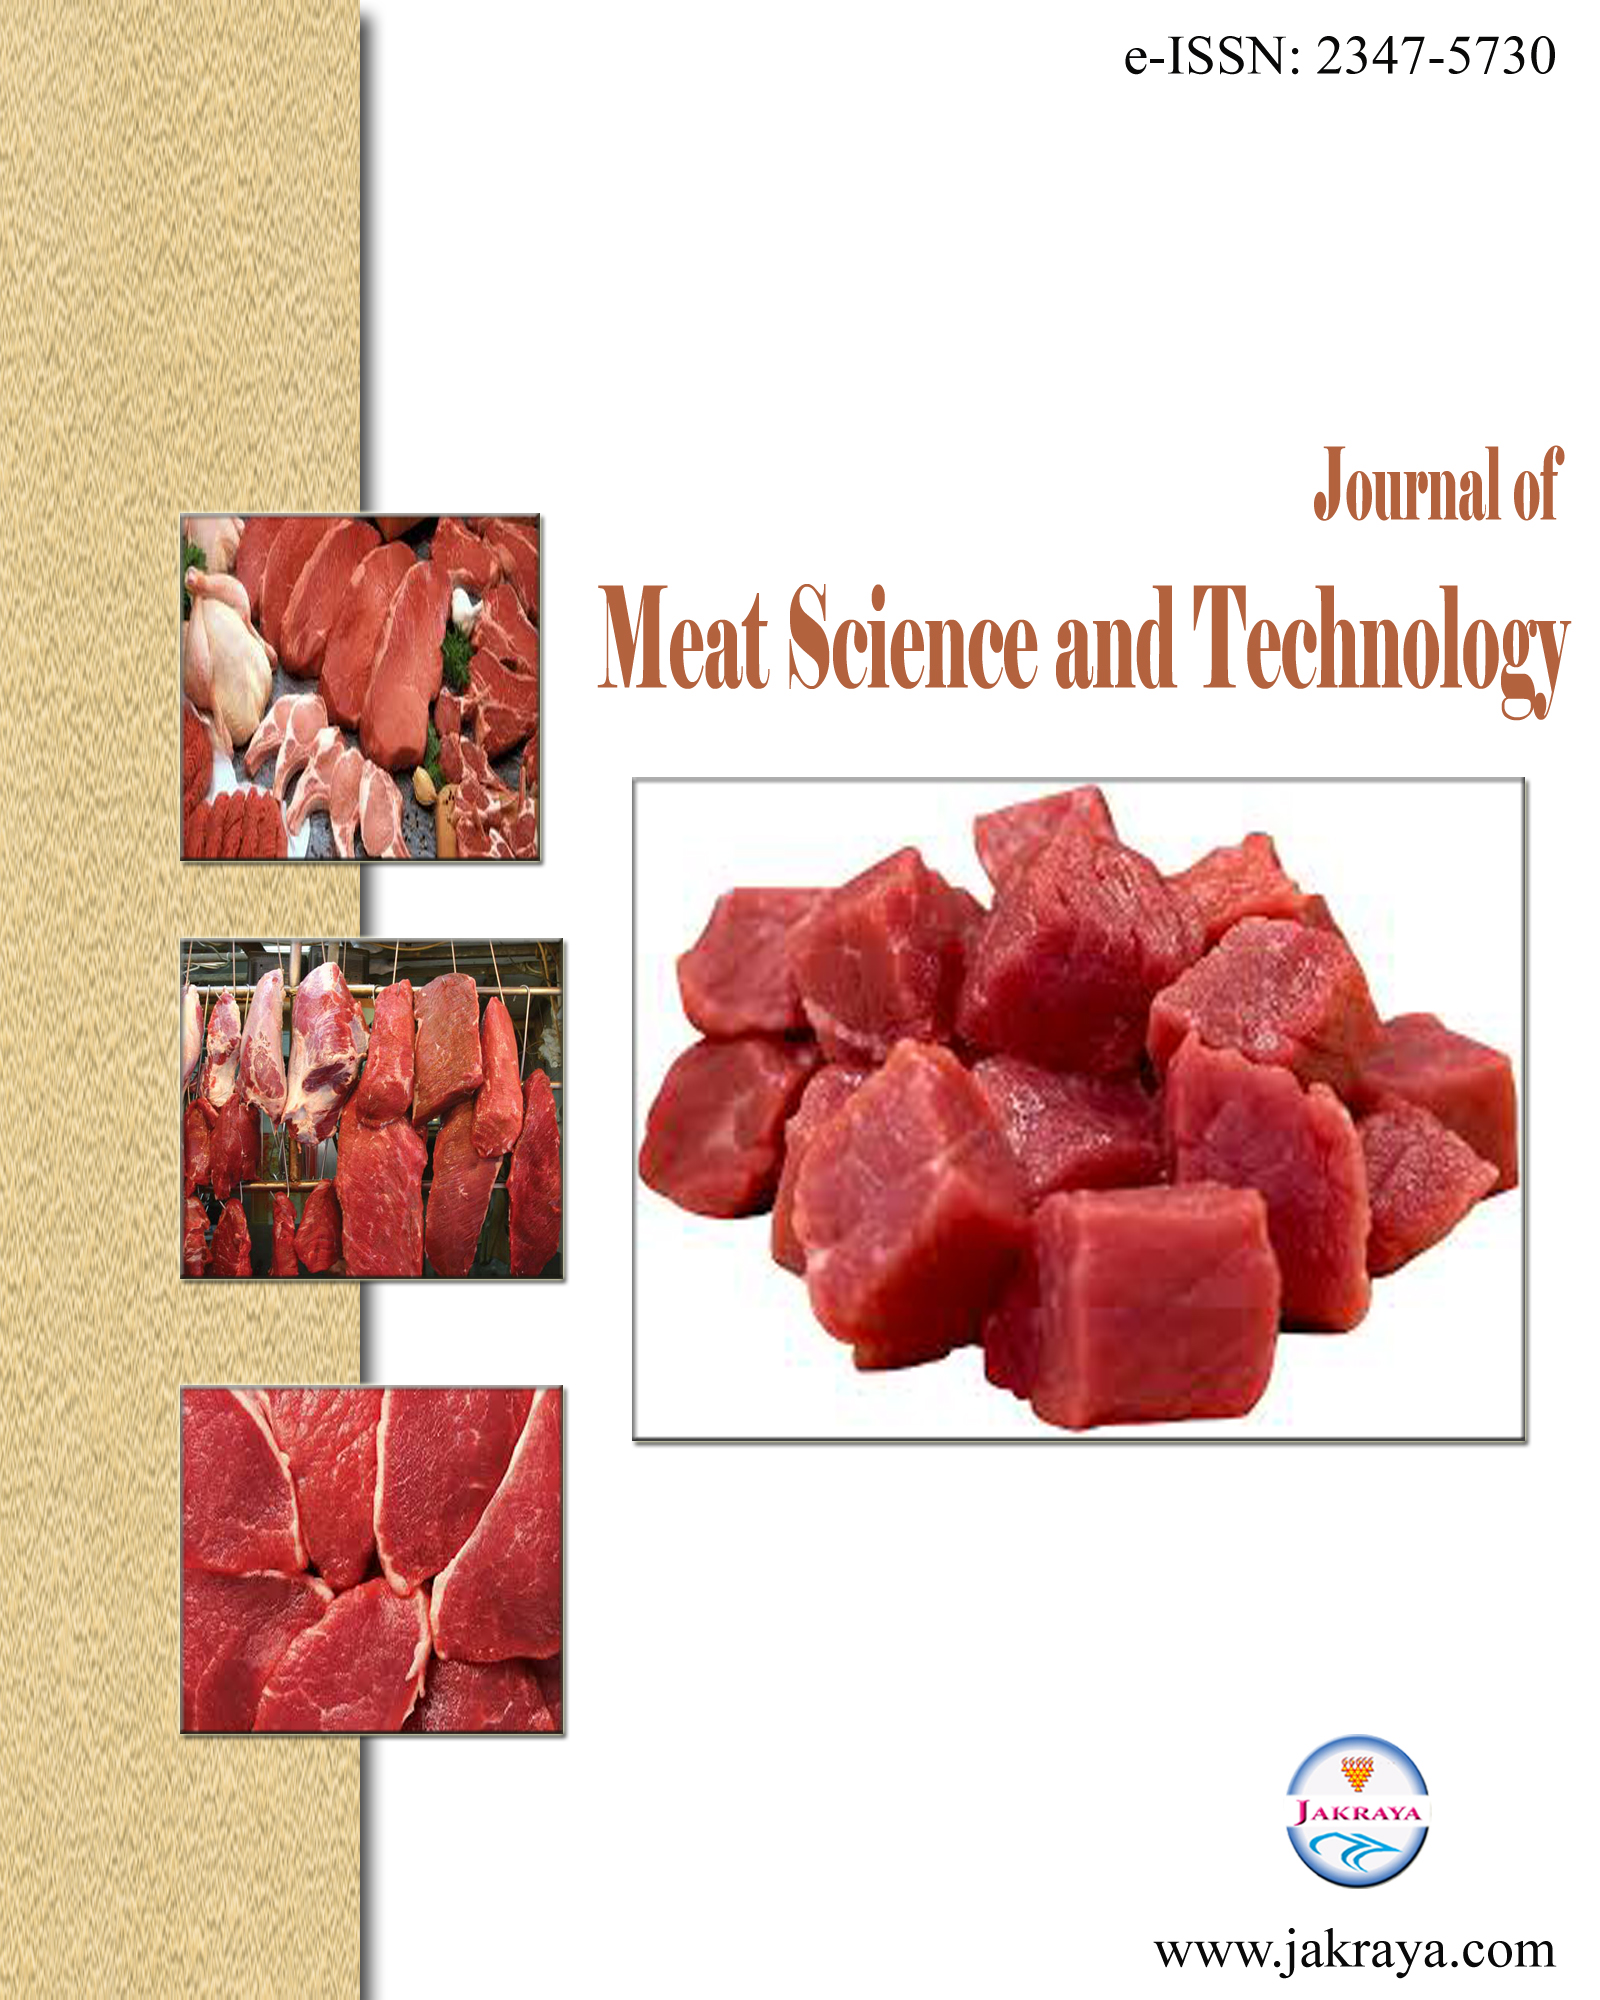 Journal of Meat Science and Technology